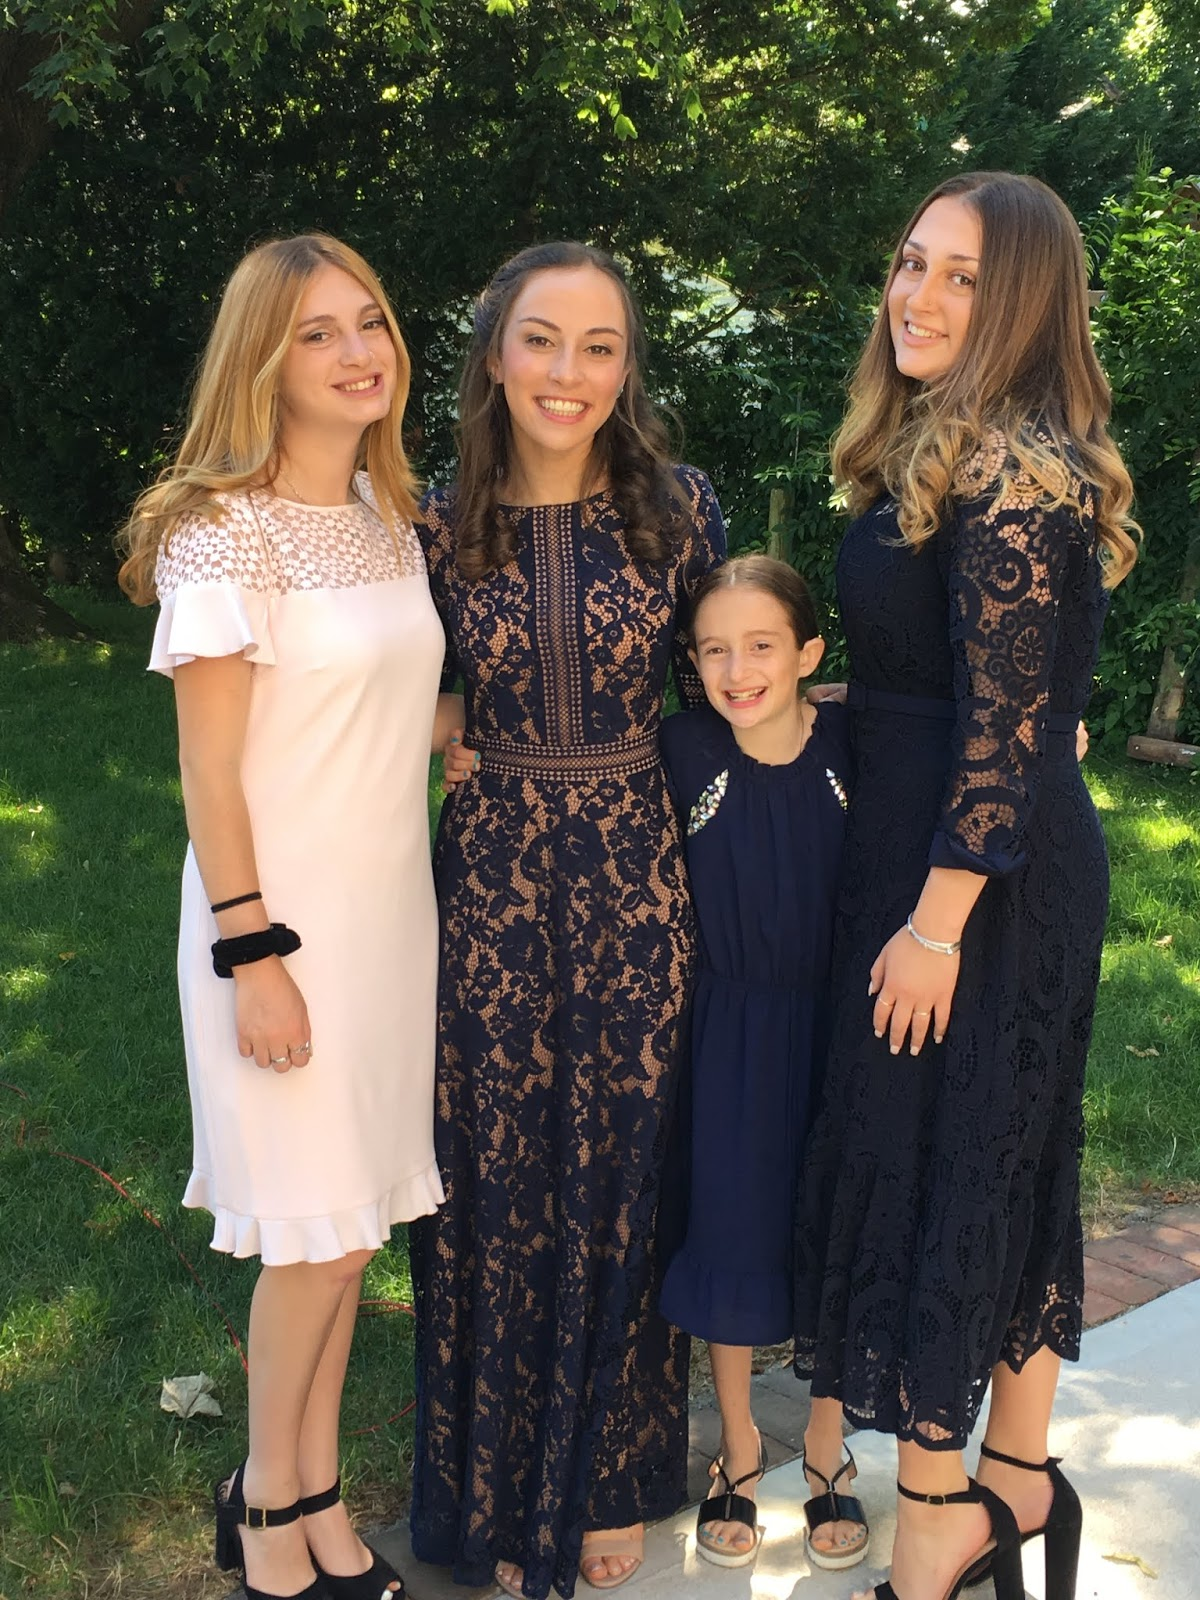 Taking Giant Steps: The Shaping of a Modern Orthodox Woman's